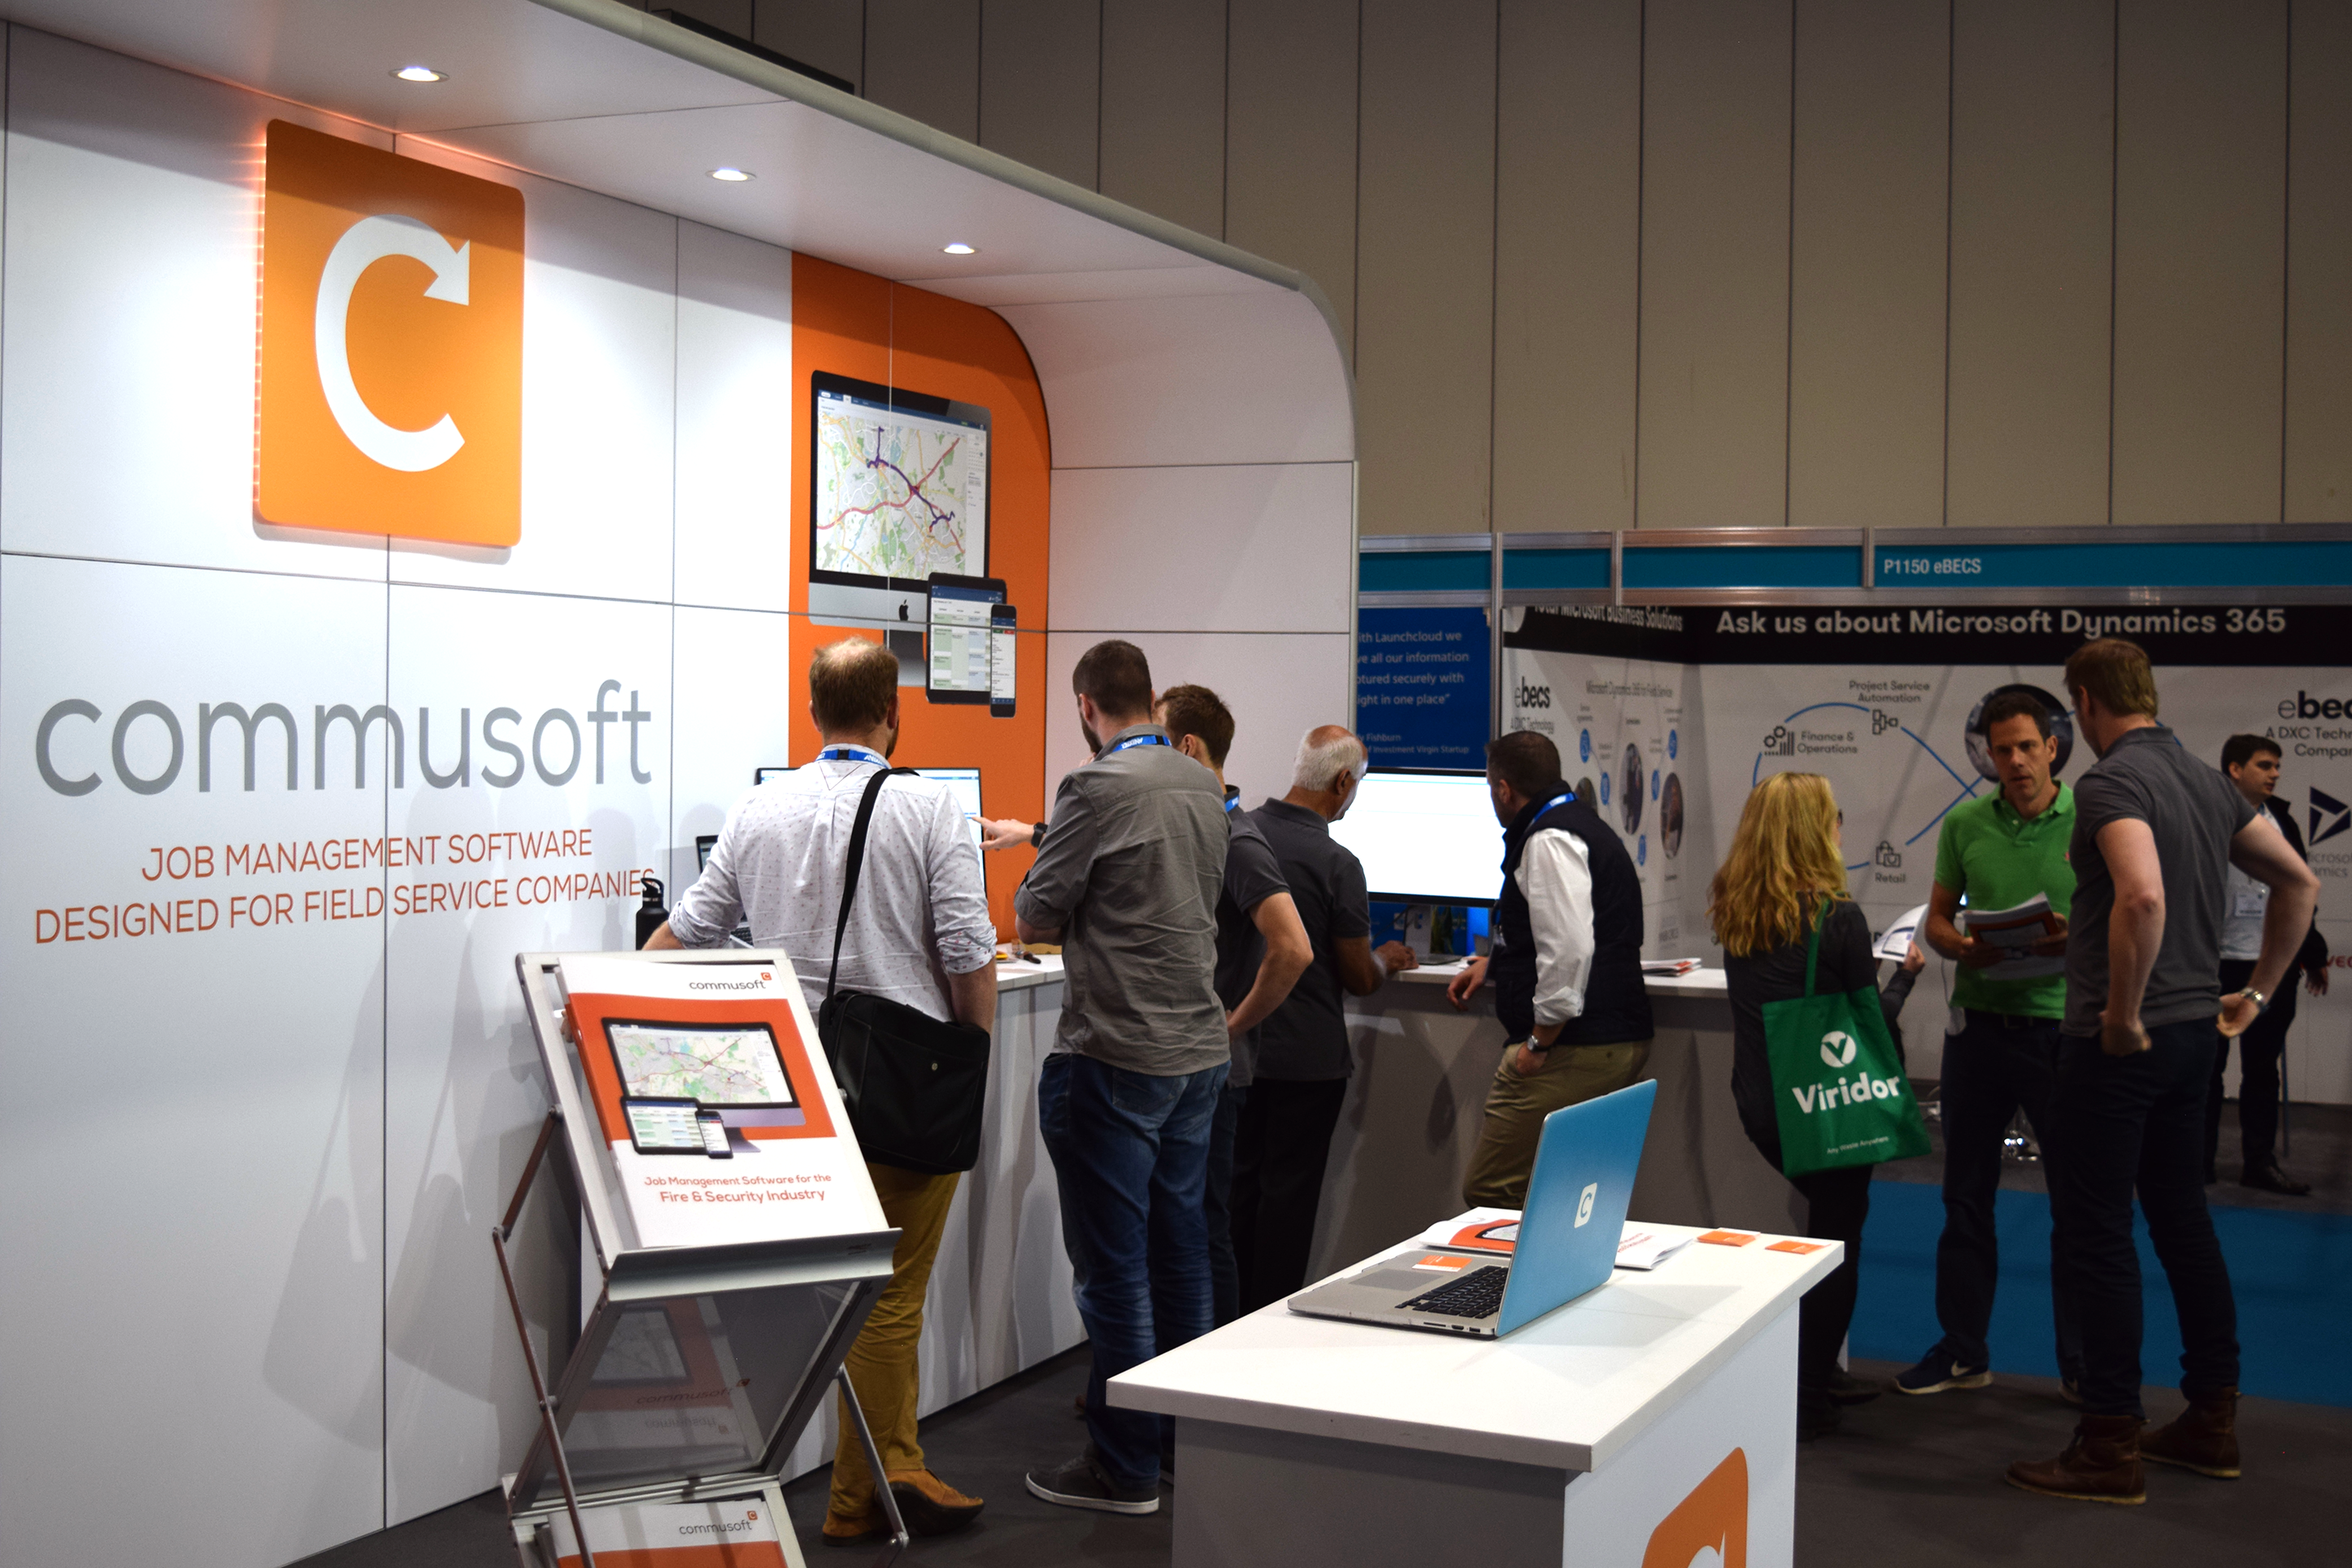 Field Service Management Expo 2018 Commusoft stand